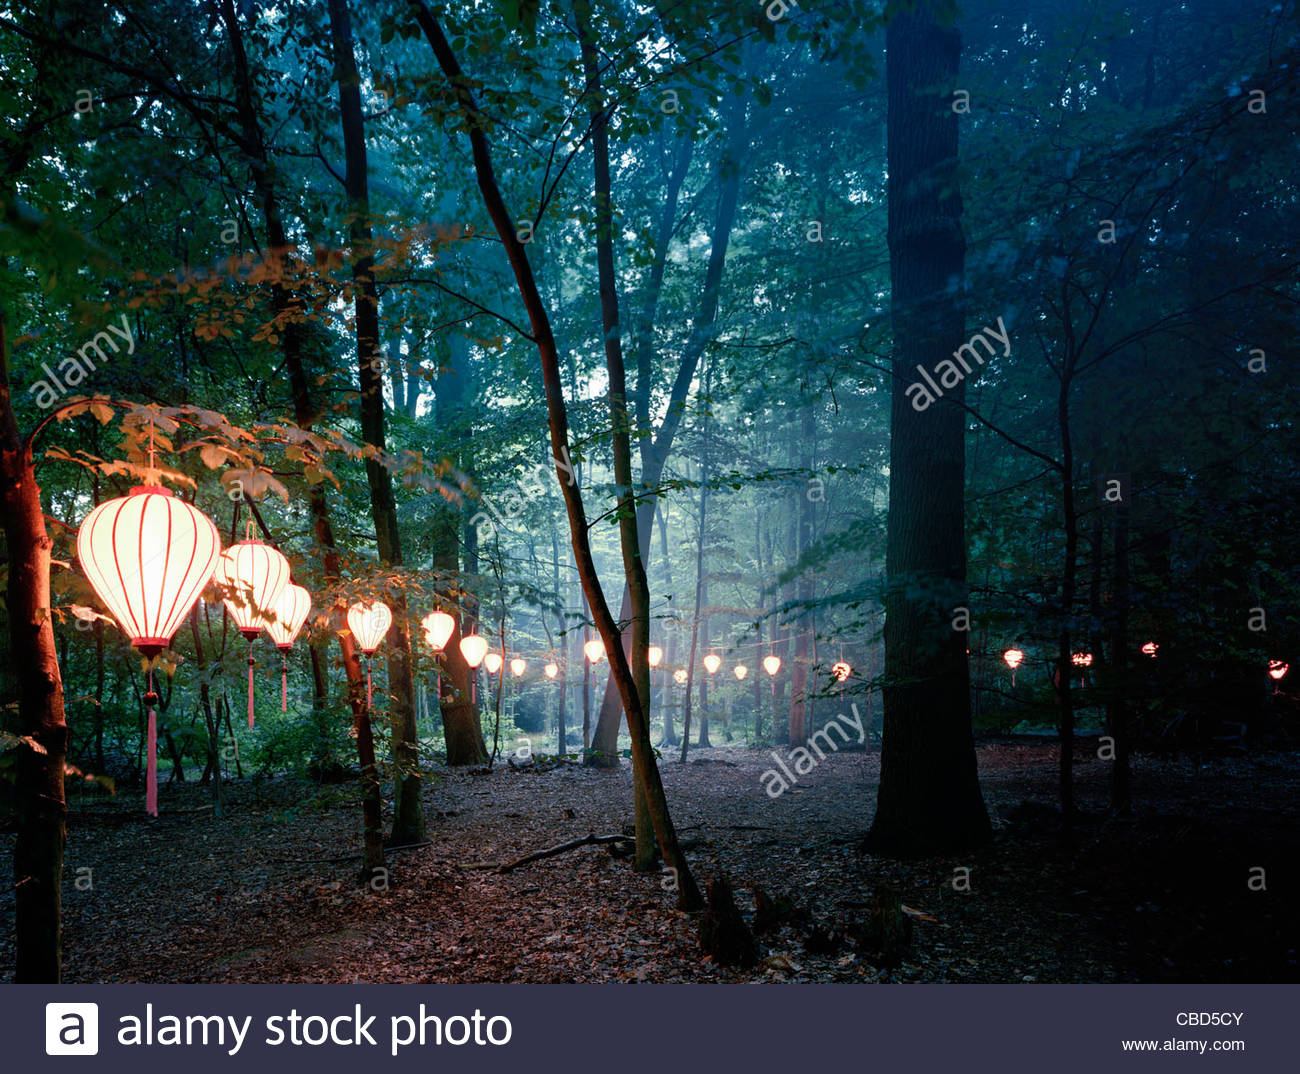 Fall Fairy Wallpaper Lights Hanging From Trees In Forest Stock Photo 41471611